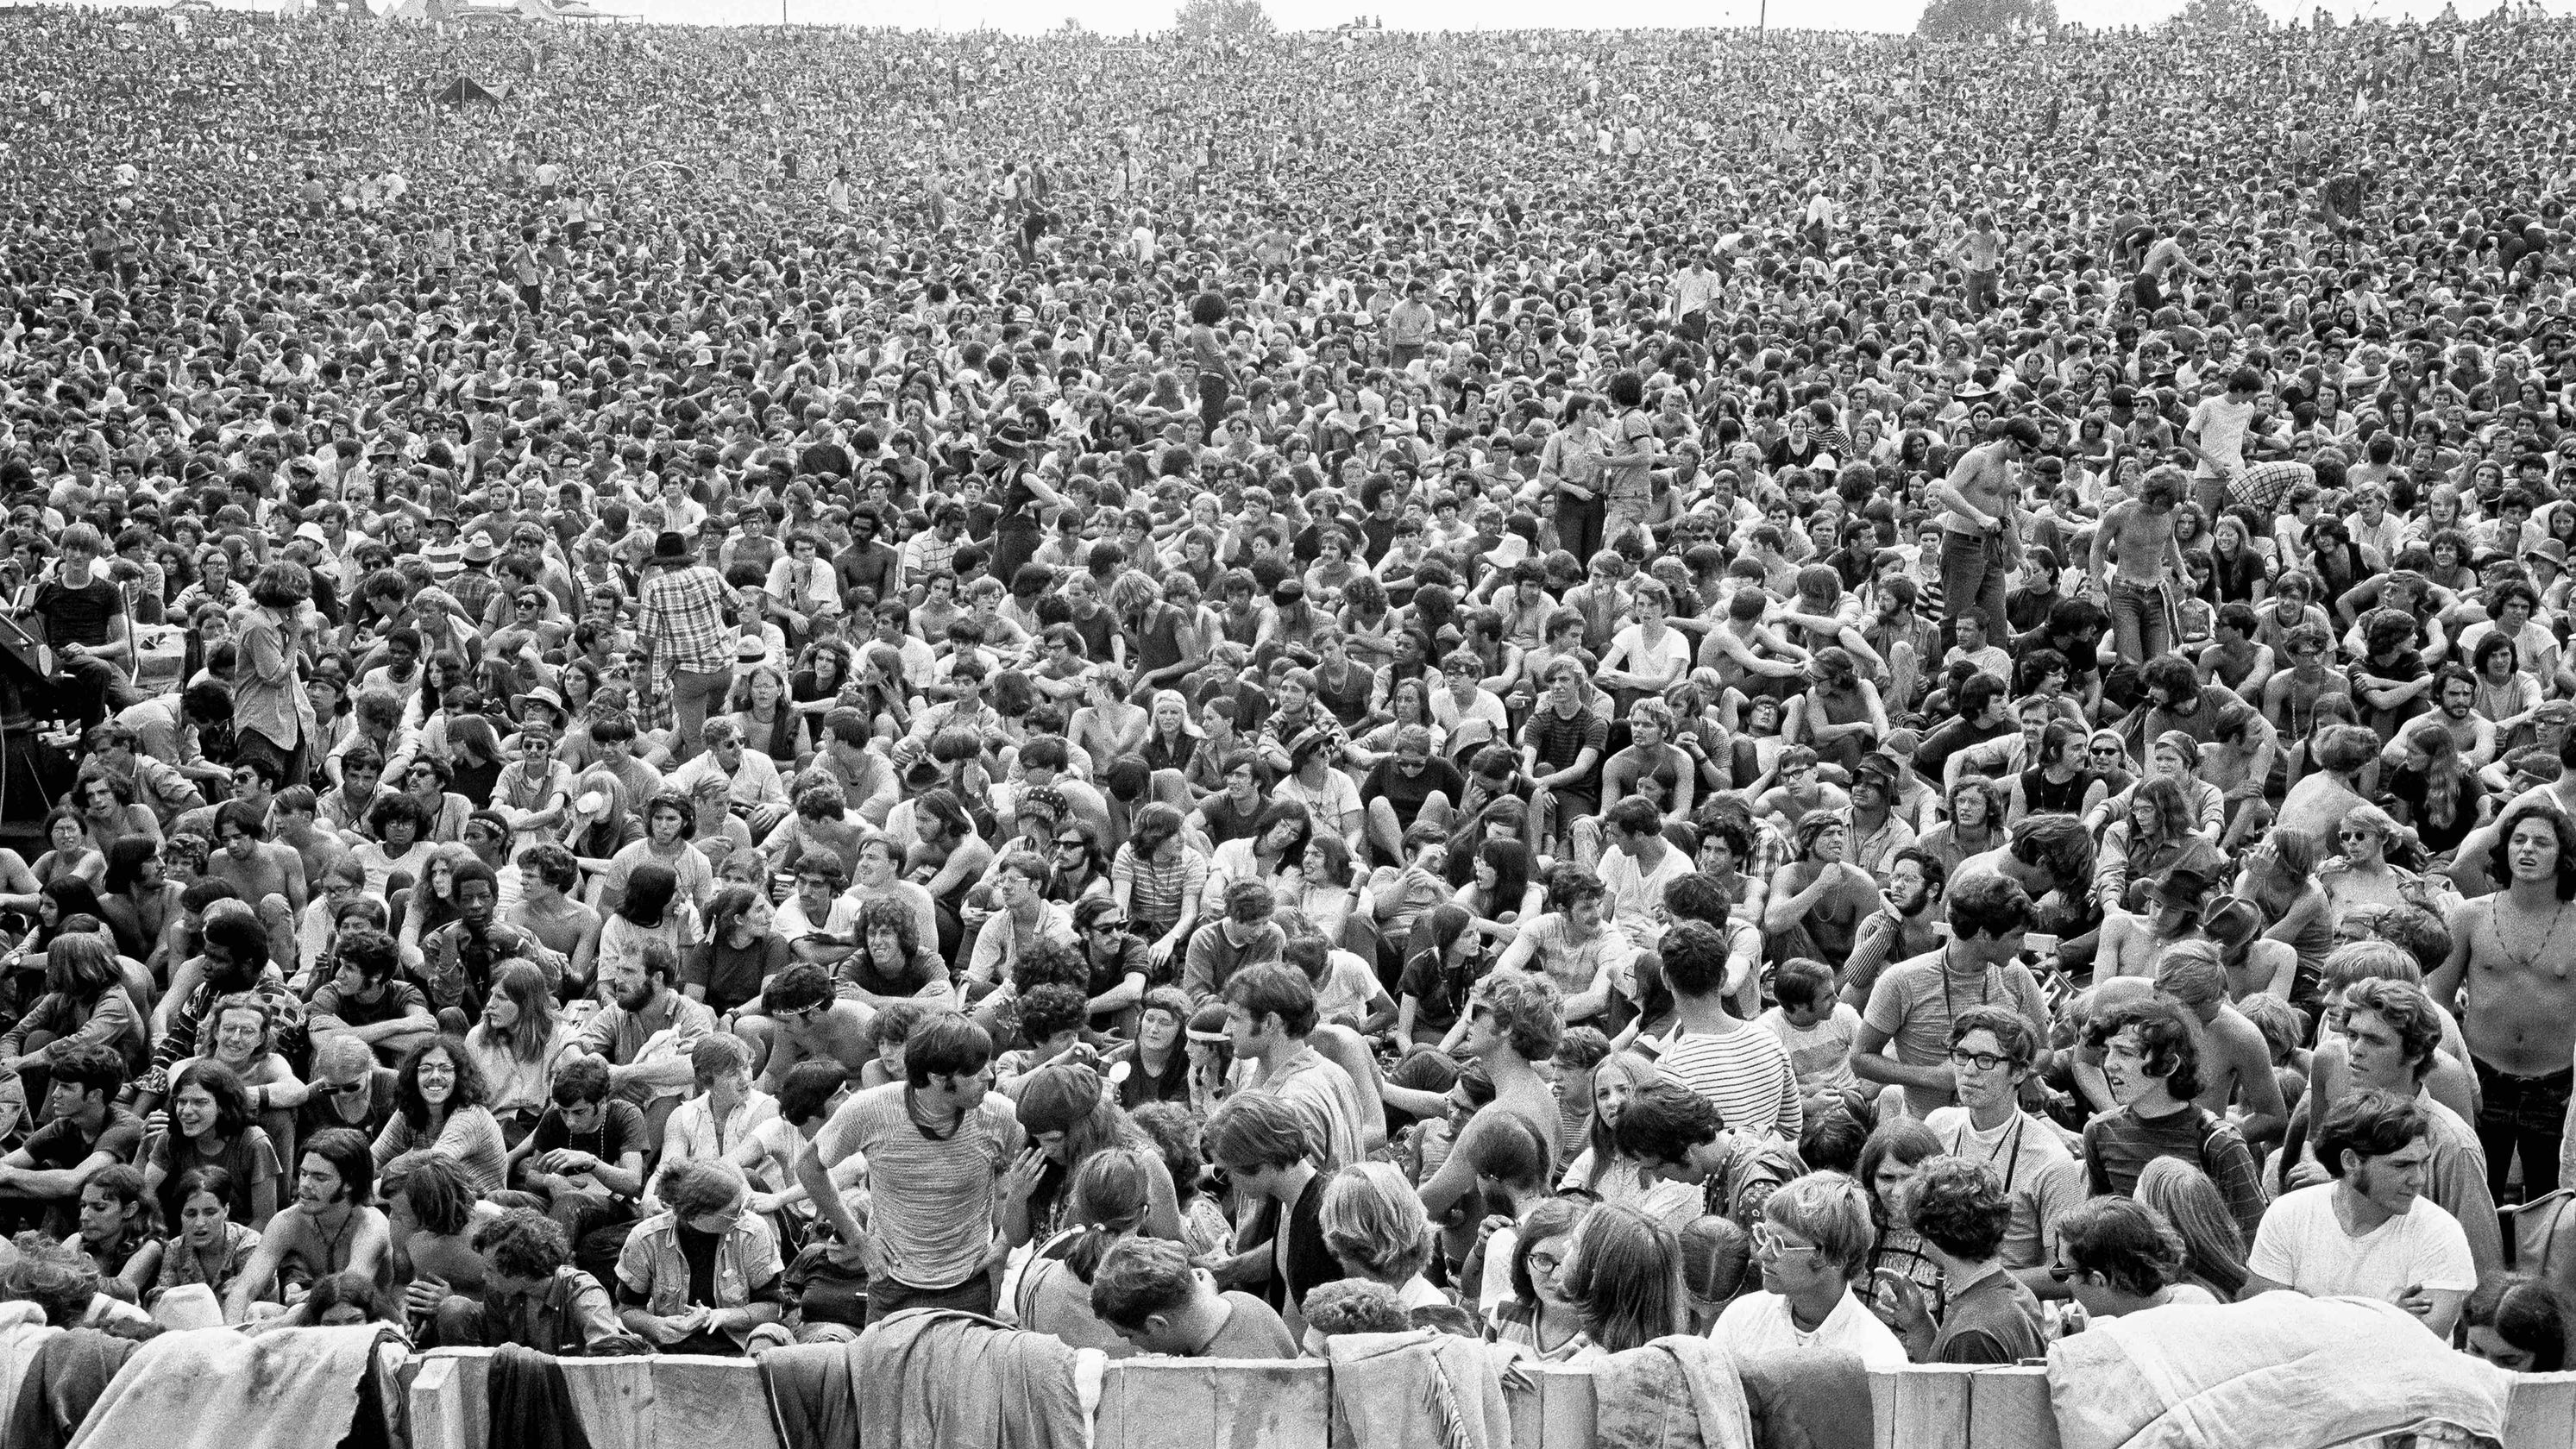 Today in History, August 15, 1969: Iconic 1960s Woodstock